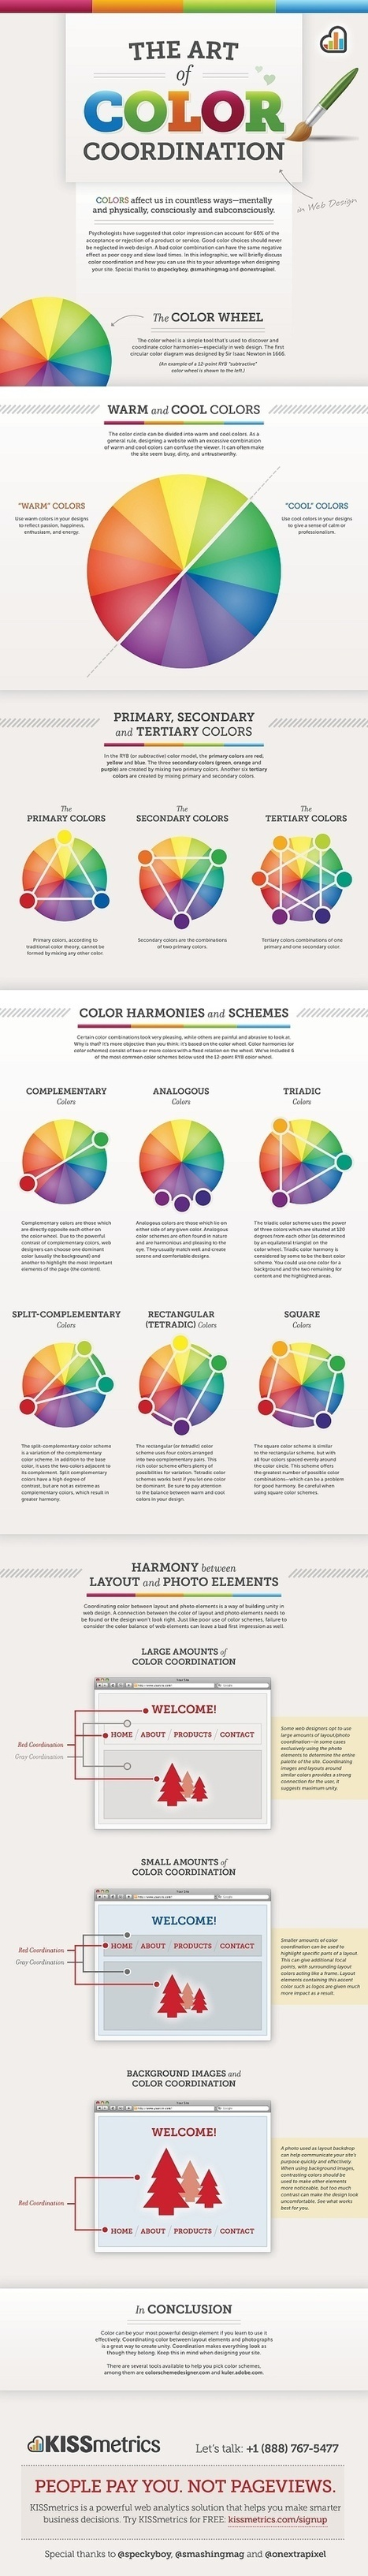 Color Is MASTER of Us All [Infographic] | Web mobile - UI Design - Html5-CSS3 | Scoop.it